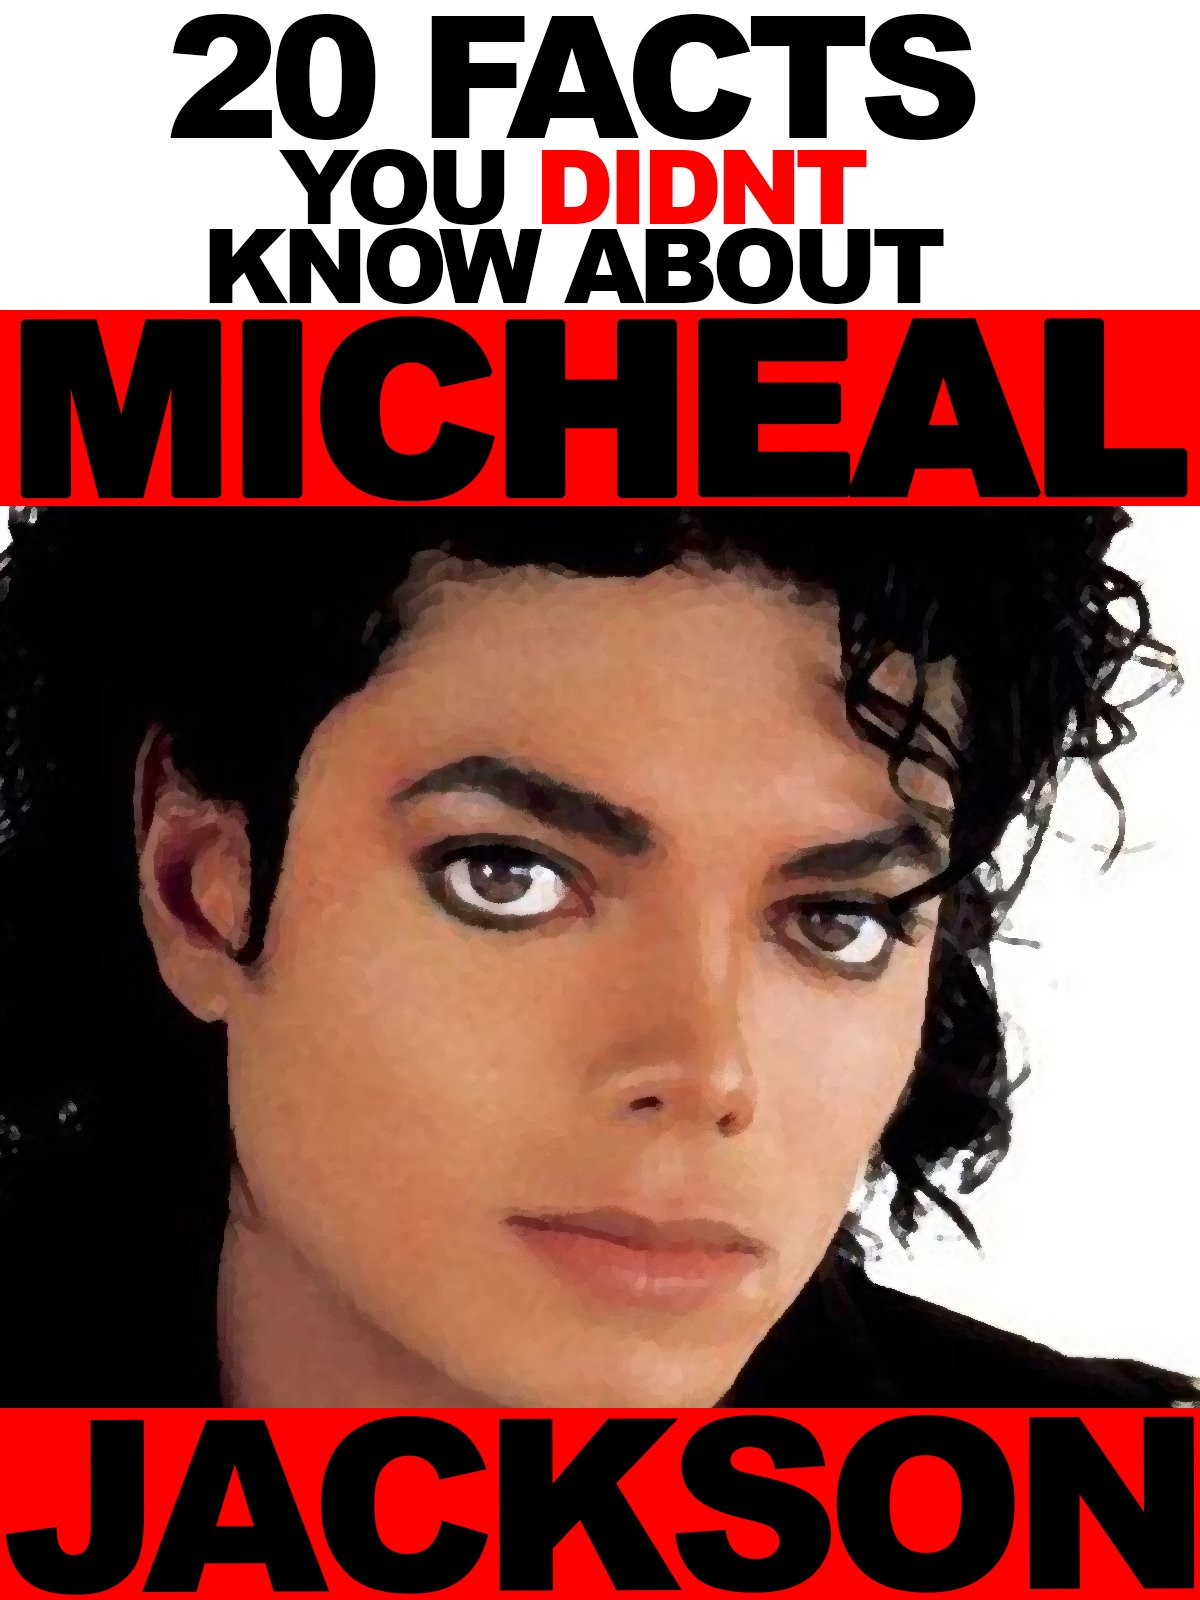 20 Facts You Didnt Know About Michael Jackson